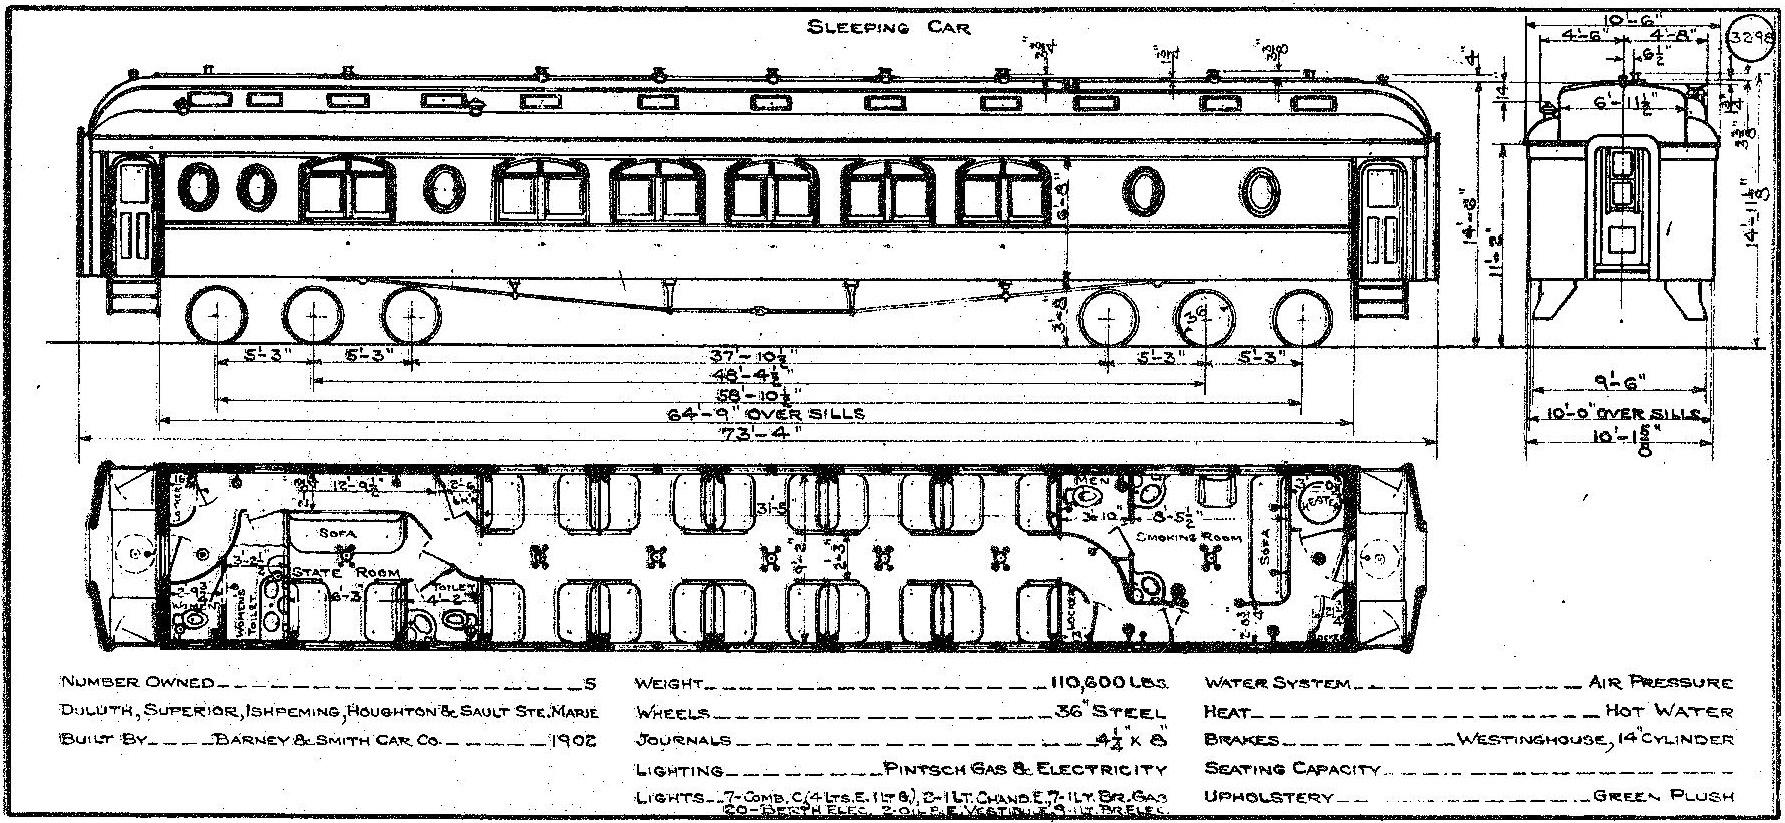 DSS&A 1902 Sleeping Cars diagram-page-001 - Mid-Continent Railway Museum